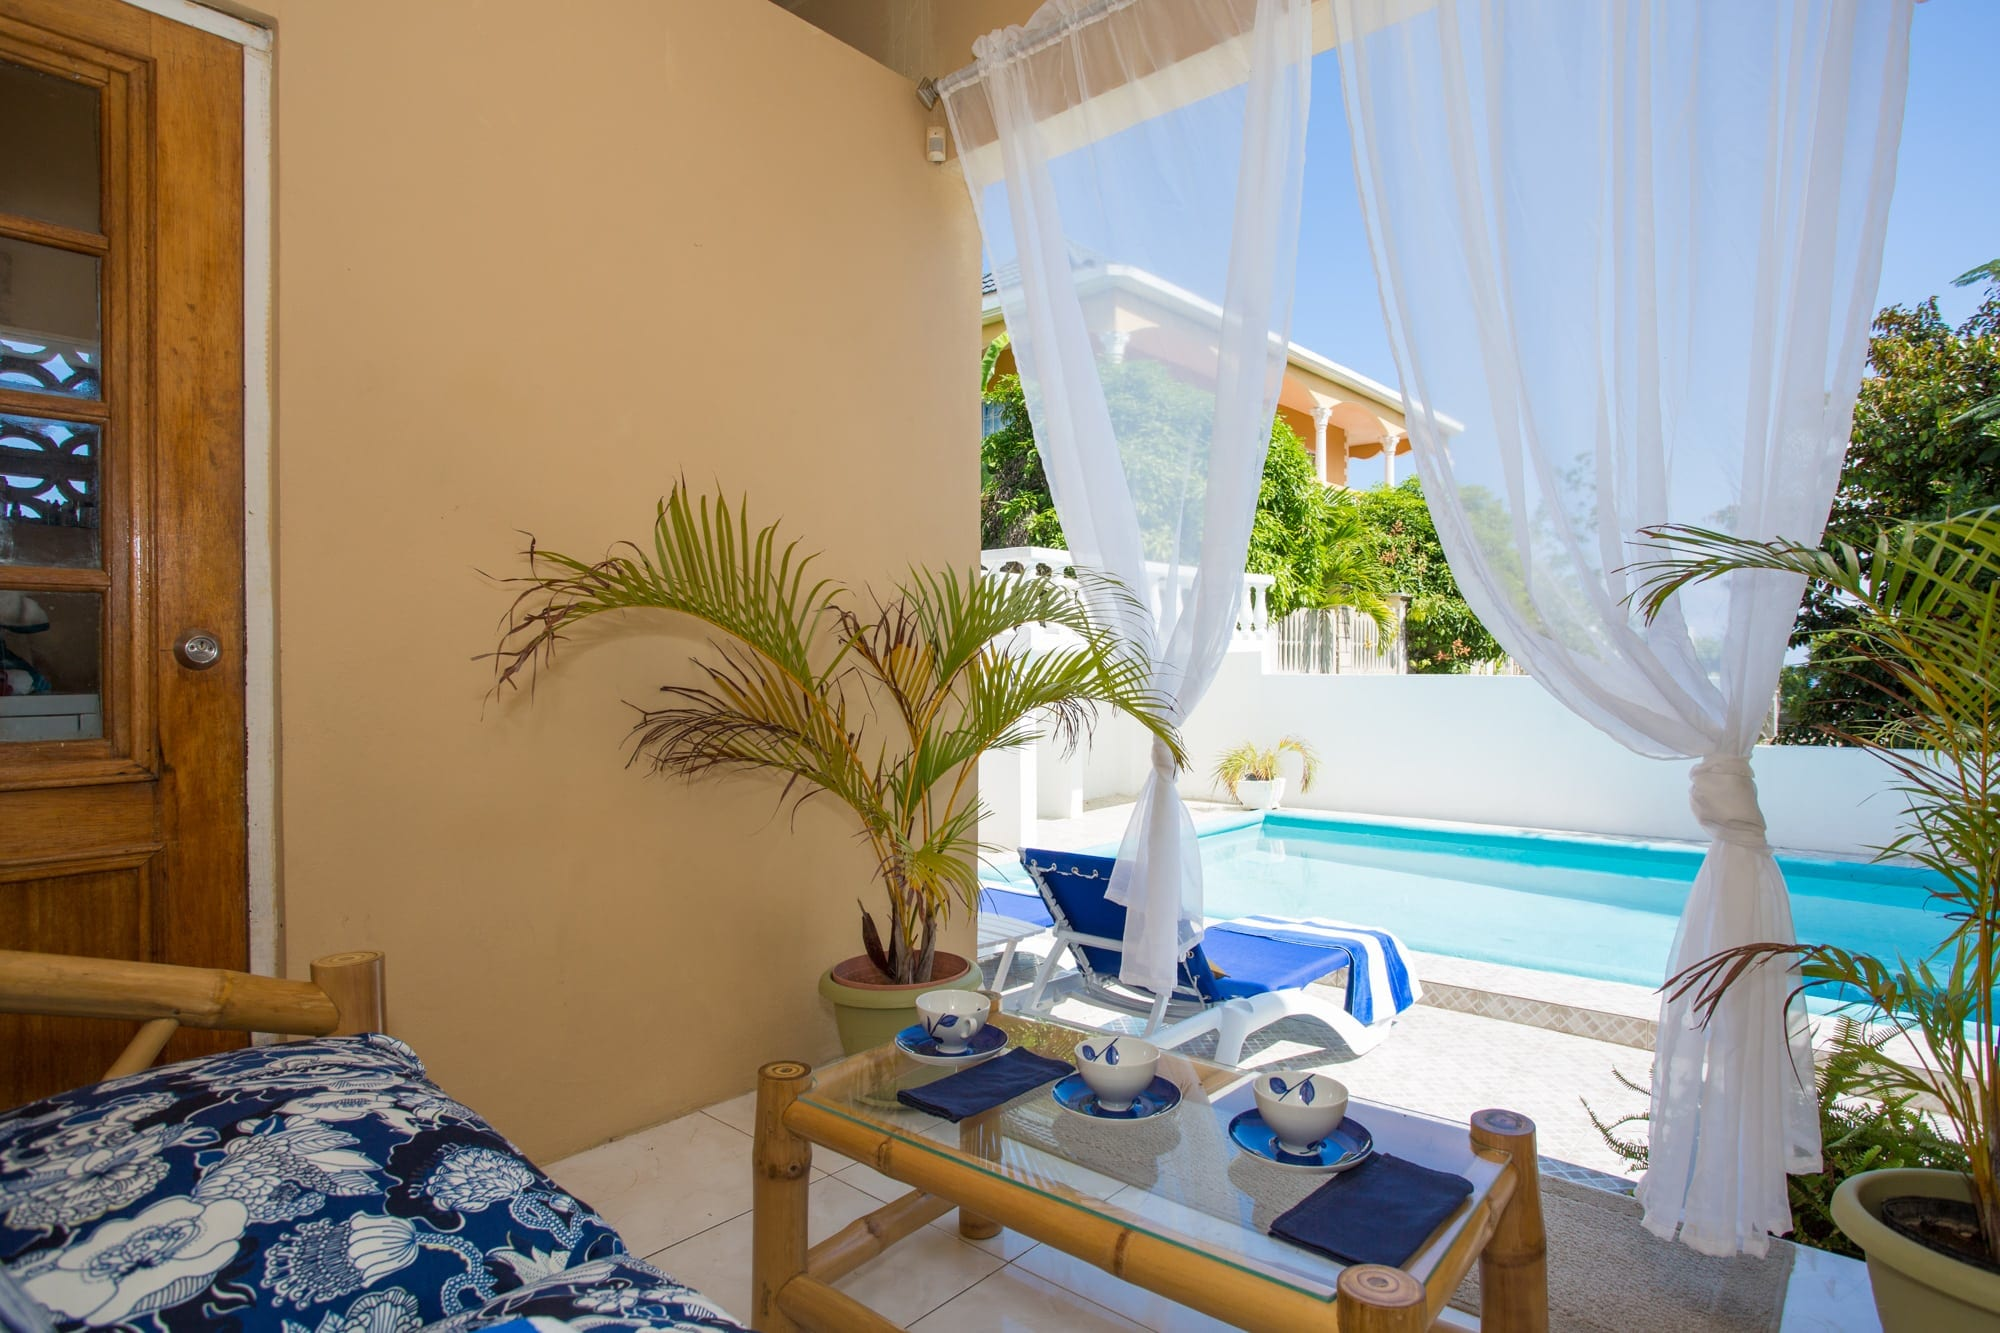 Savour a Jamaican Blue Mounatain Coffee overlooking the tropical pool